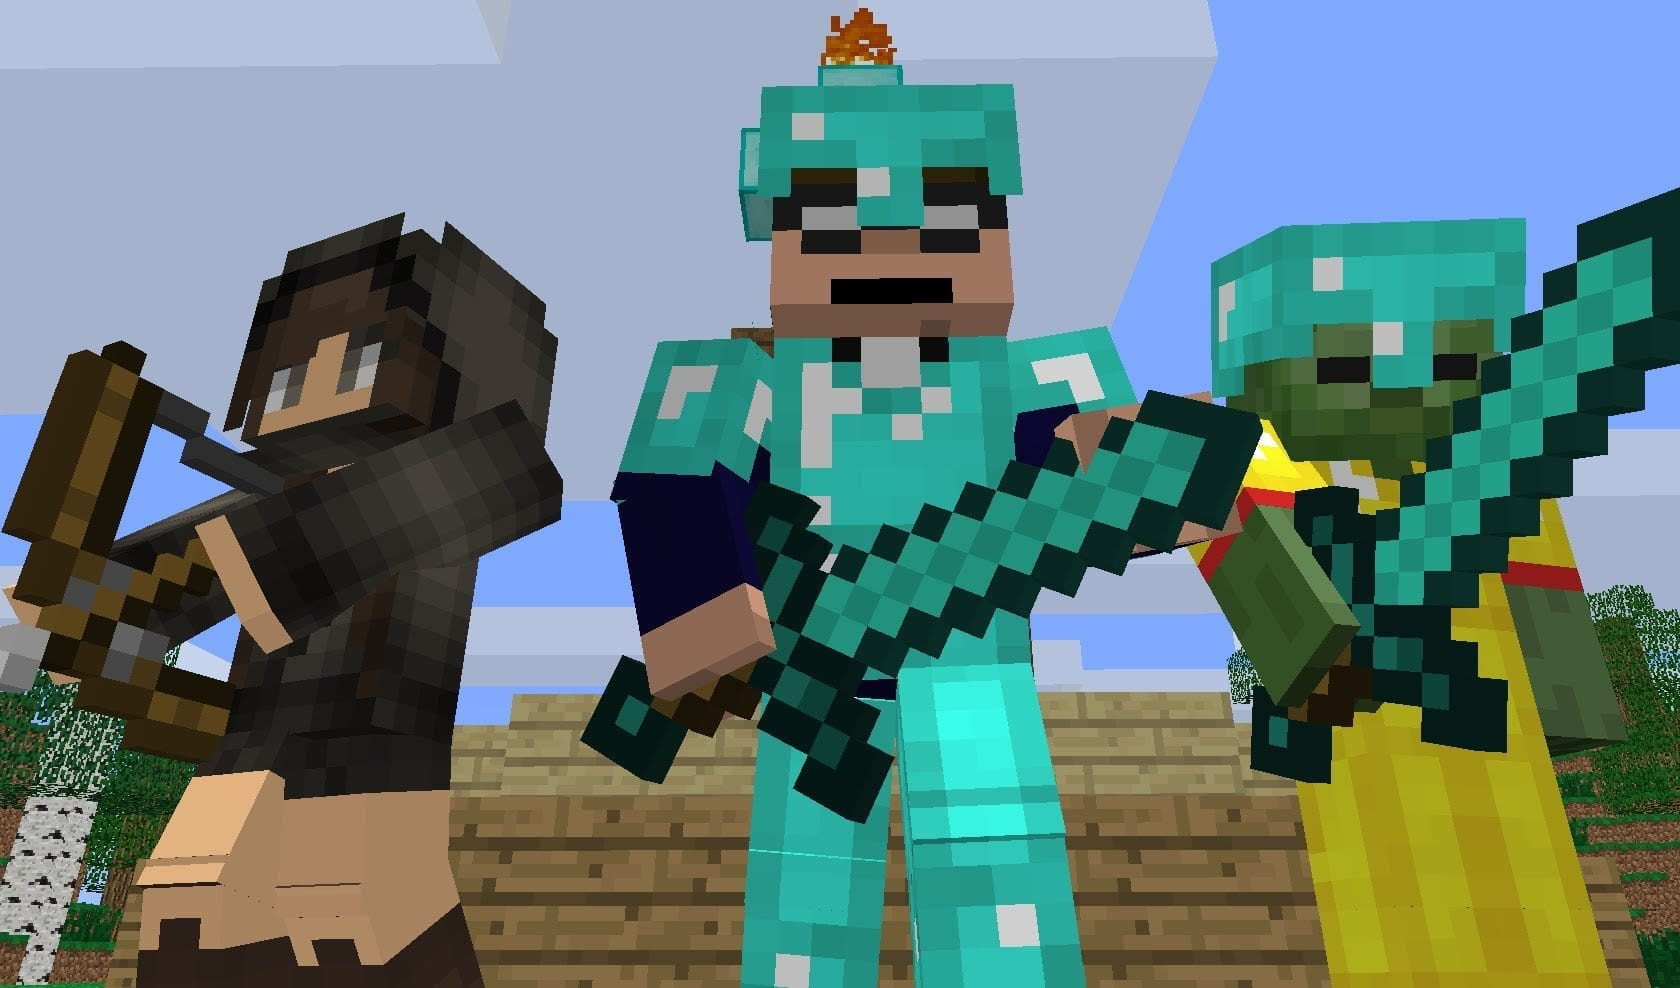 Minecraft Hunger Games Is The Best Battle Royale Game Easily - Minecraft spiele original